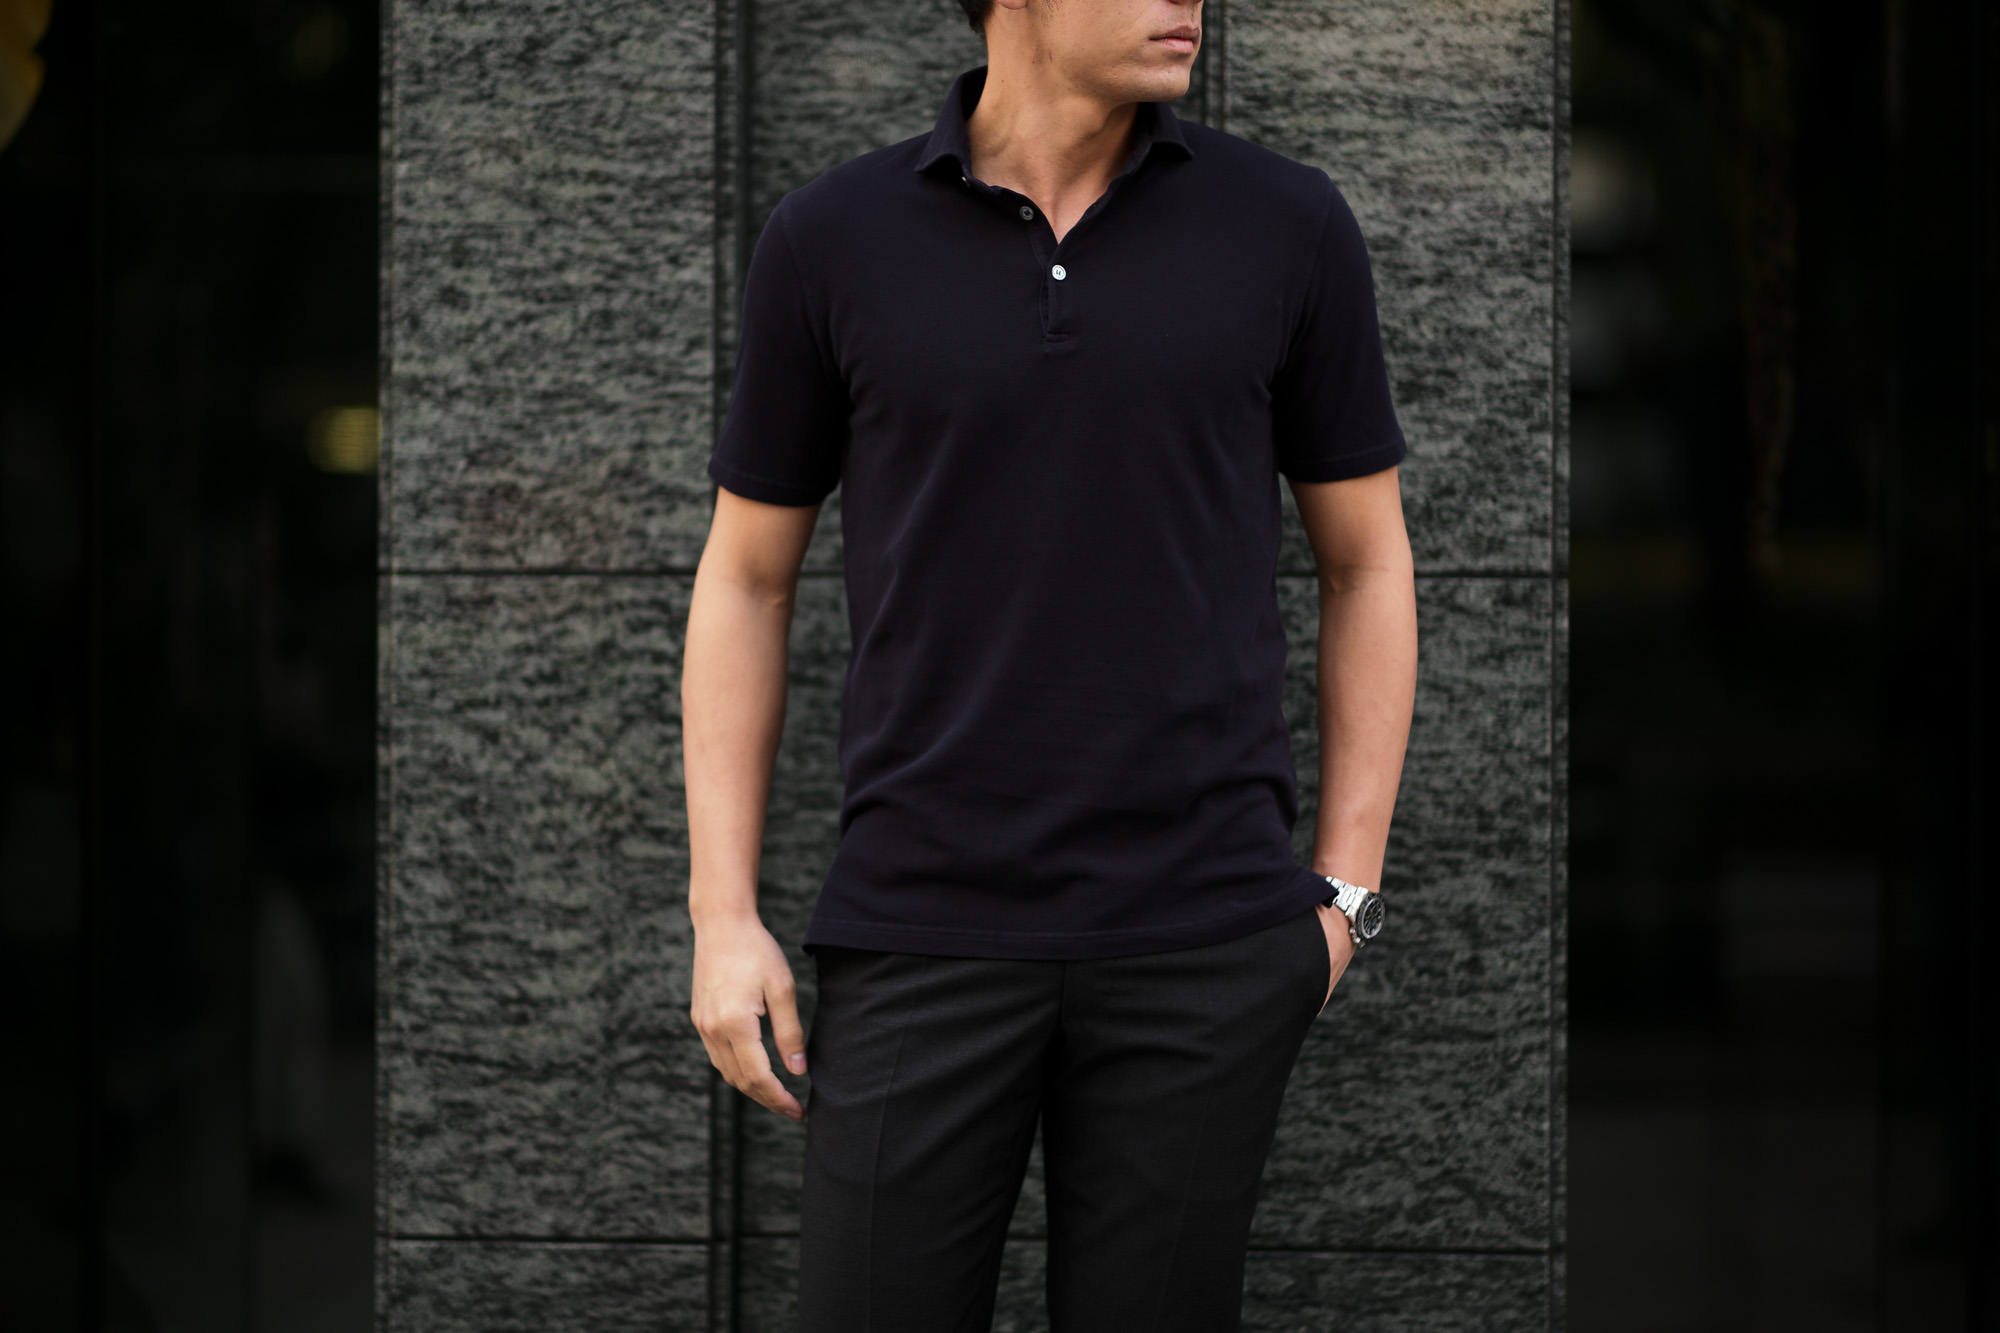 FEDELI(フェデーリ) Piquet Polo Shirt (ピケ ポロシャツ) カノコ ポロシャツ NAVY (ネイビー・626) made in italy (イタリア製)2020 春夏新作 愛知 名古屋 altoediritto アルトエデリット ポロ